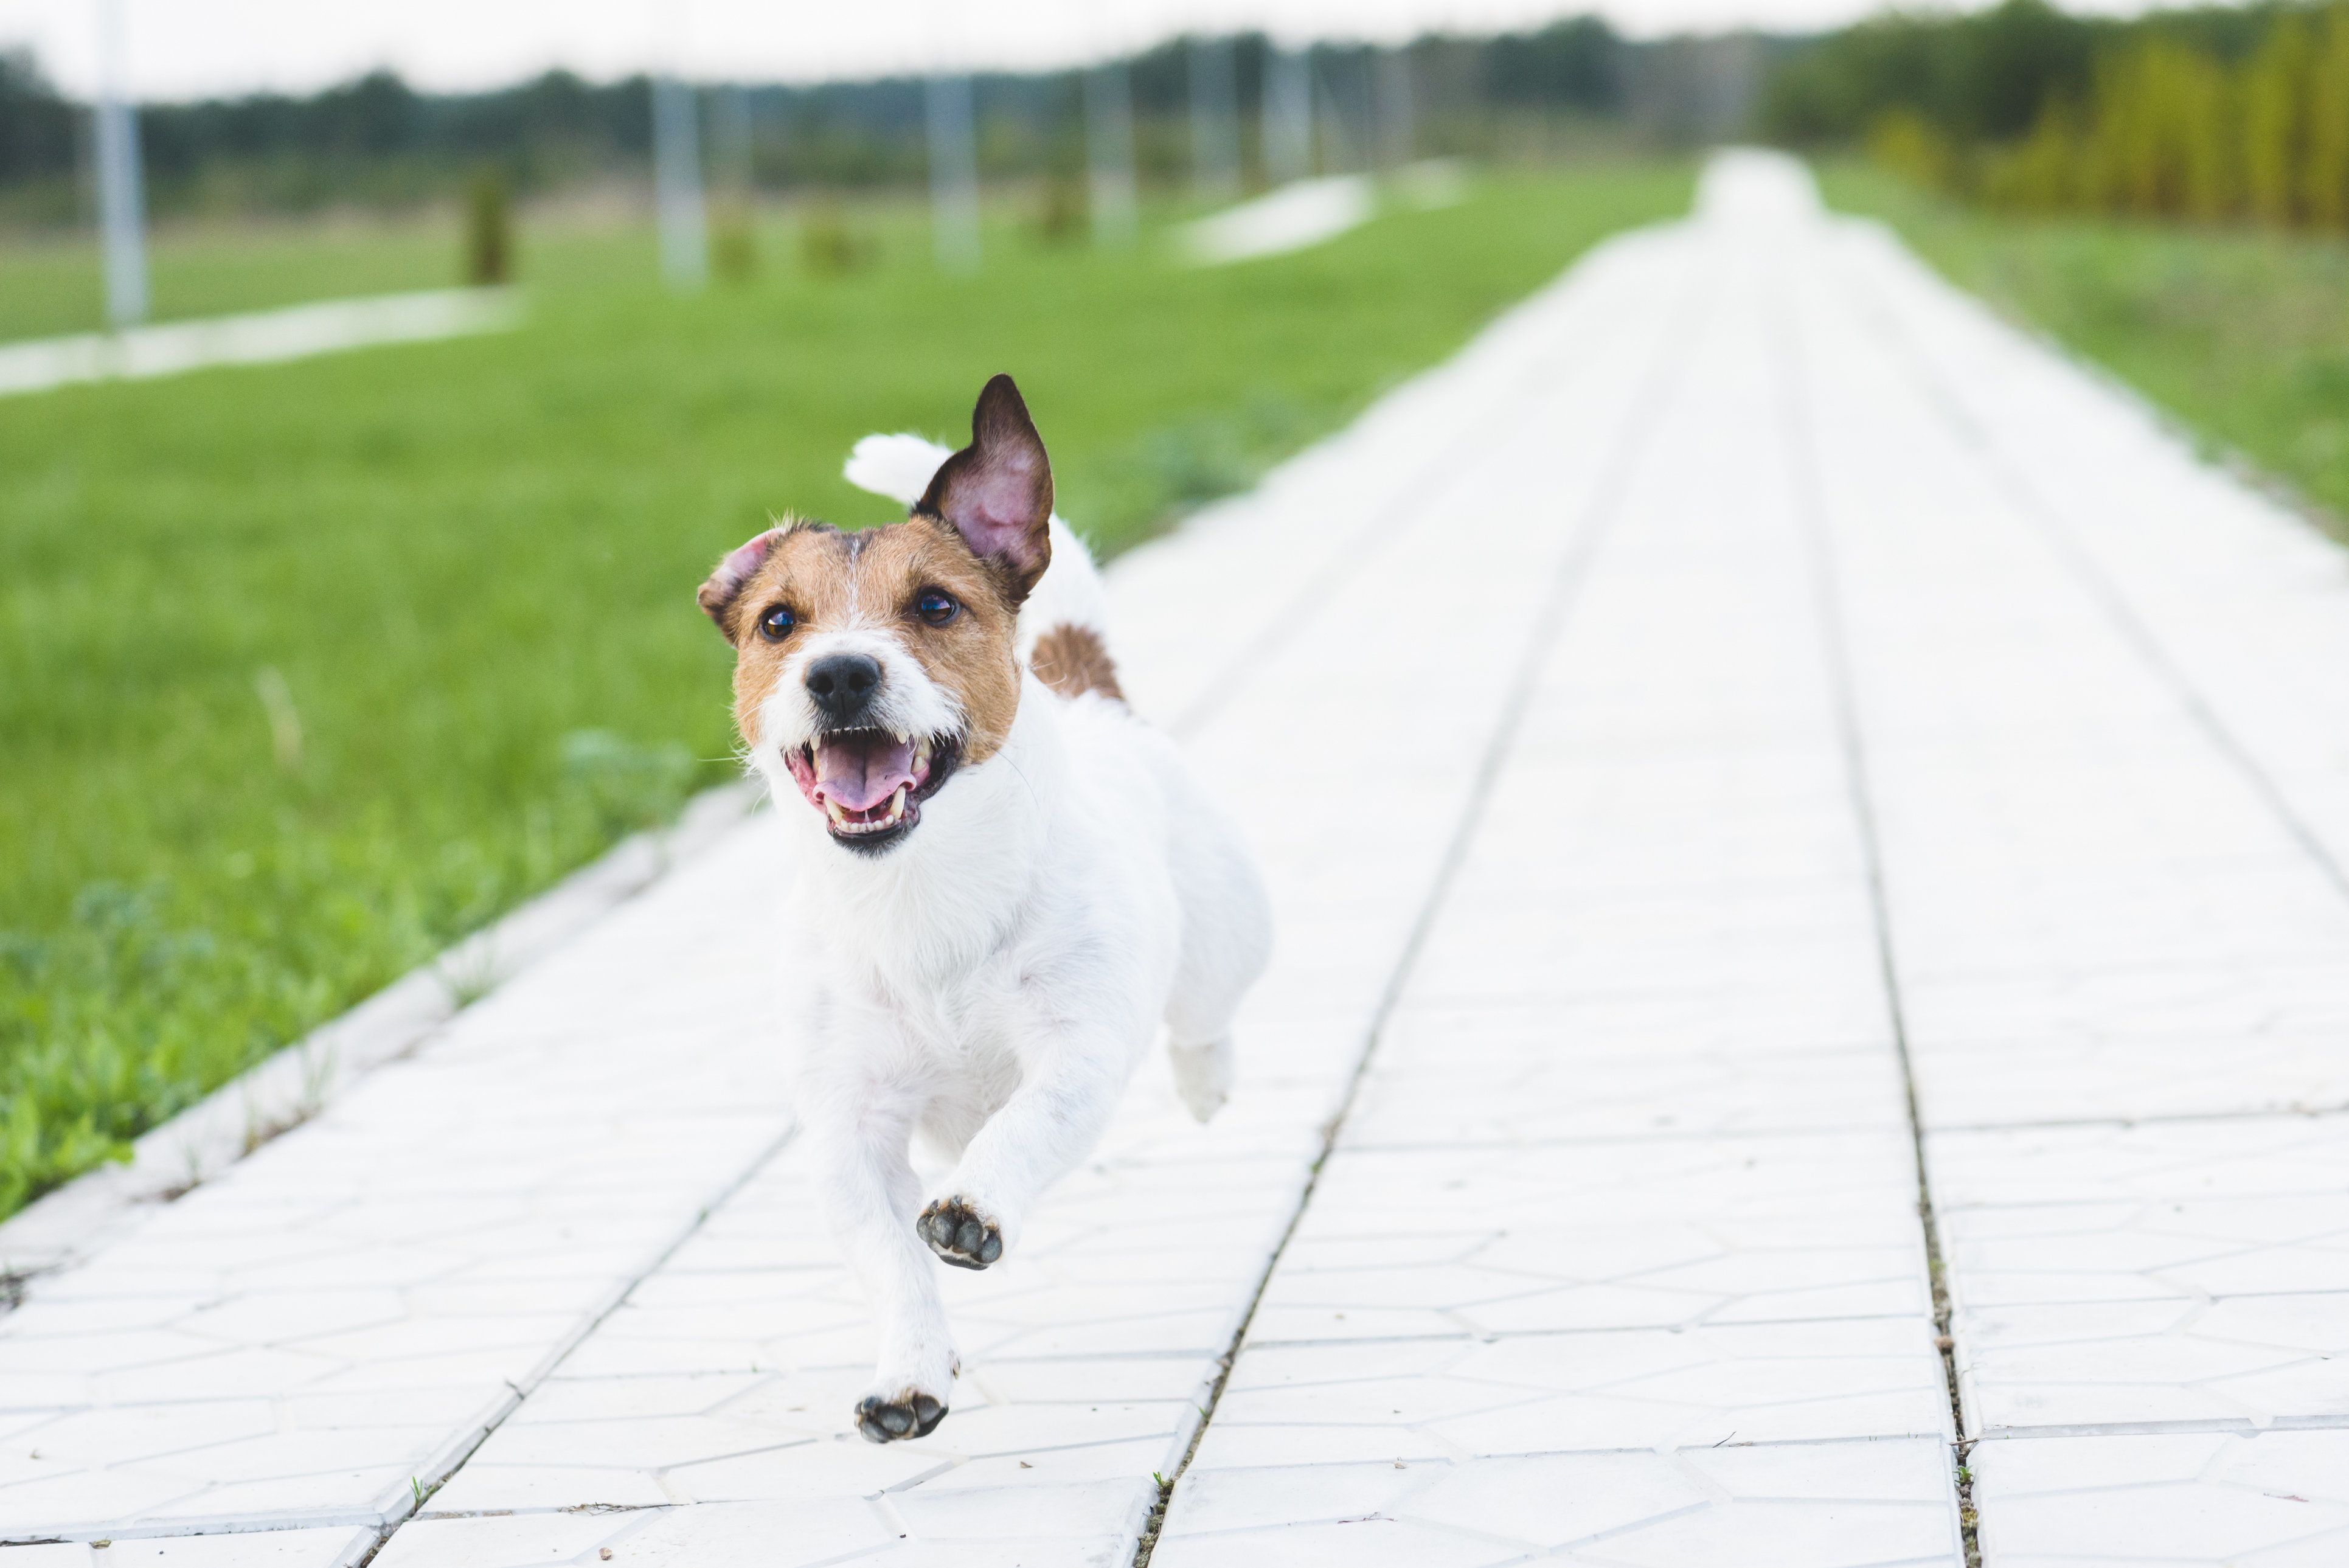 How To Catch A Dog Off Its Lead: Pet Owners Share Their Pearls Of